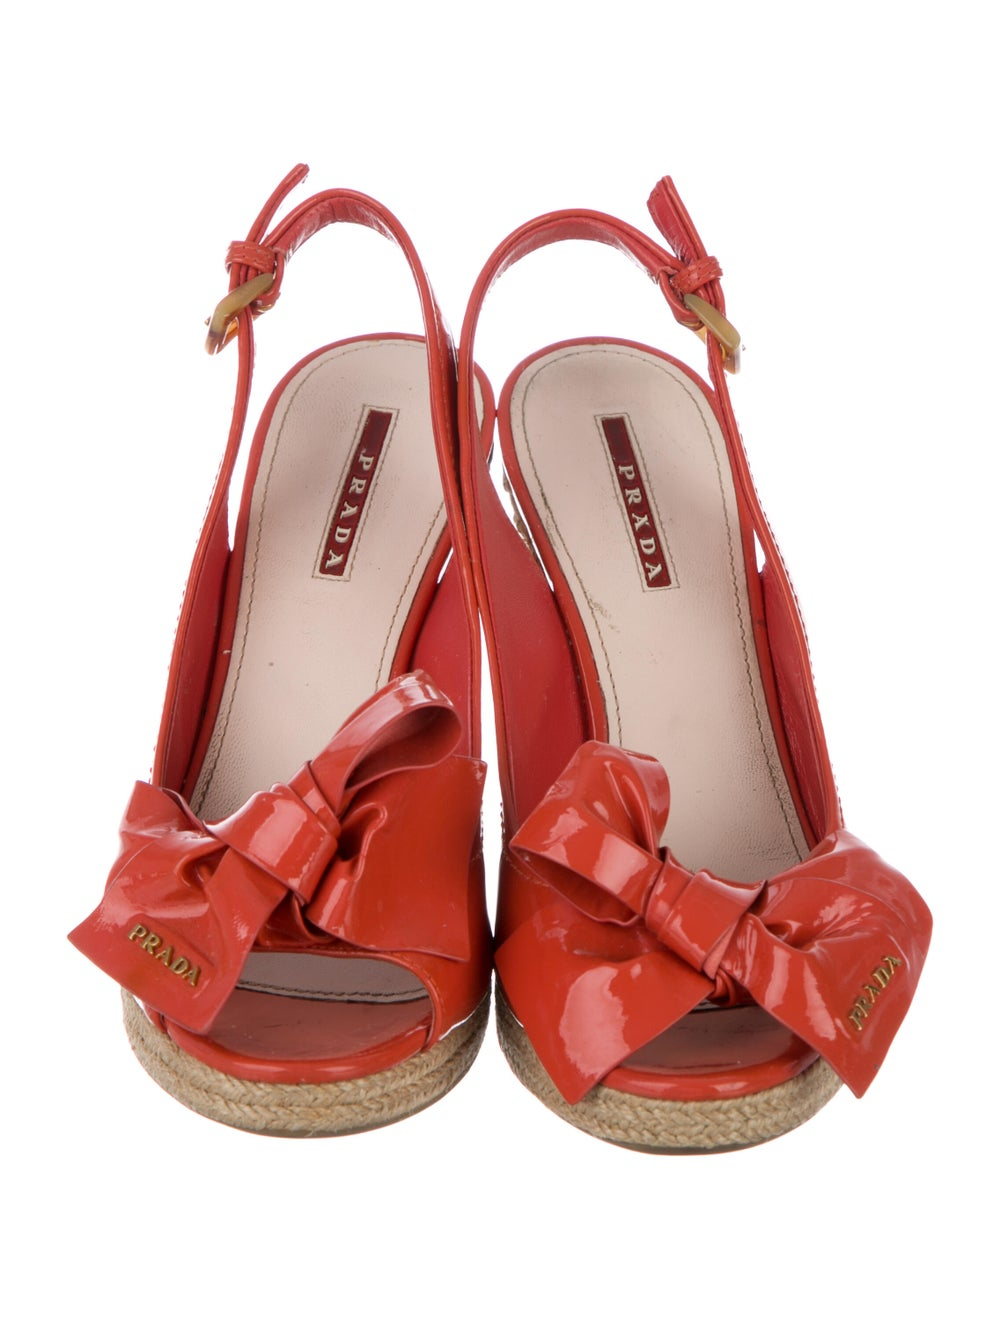 Prada Sport Patent Leather Bow Accents Espadrille… - image 3